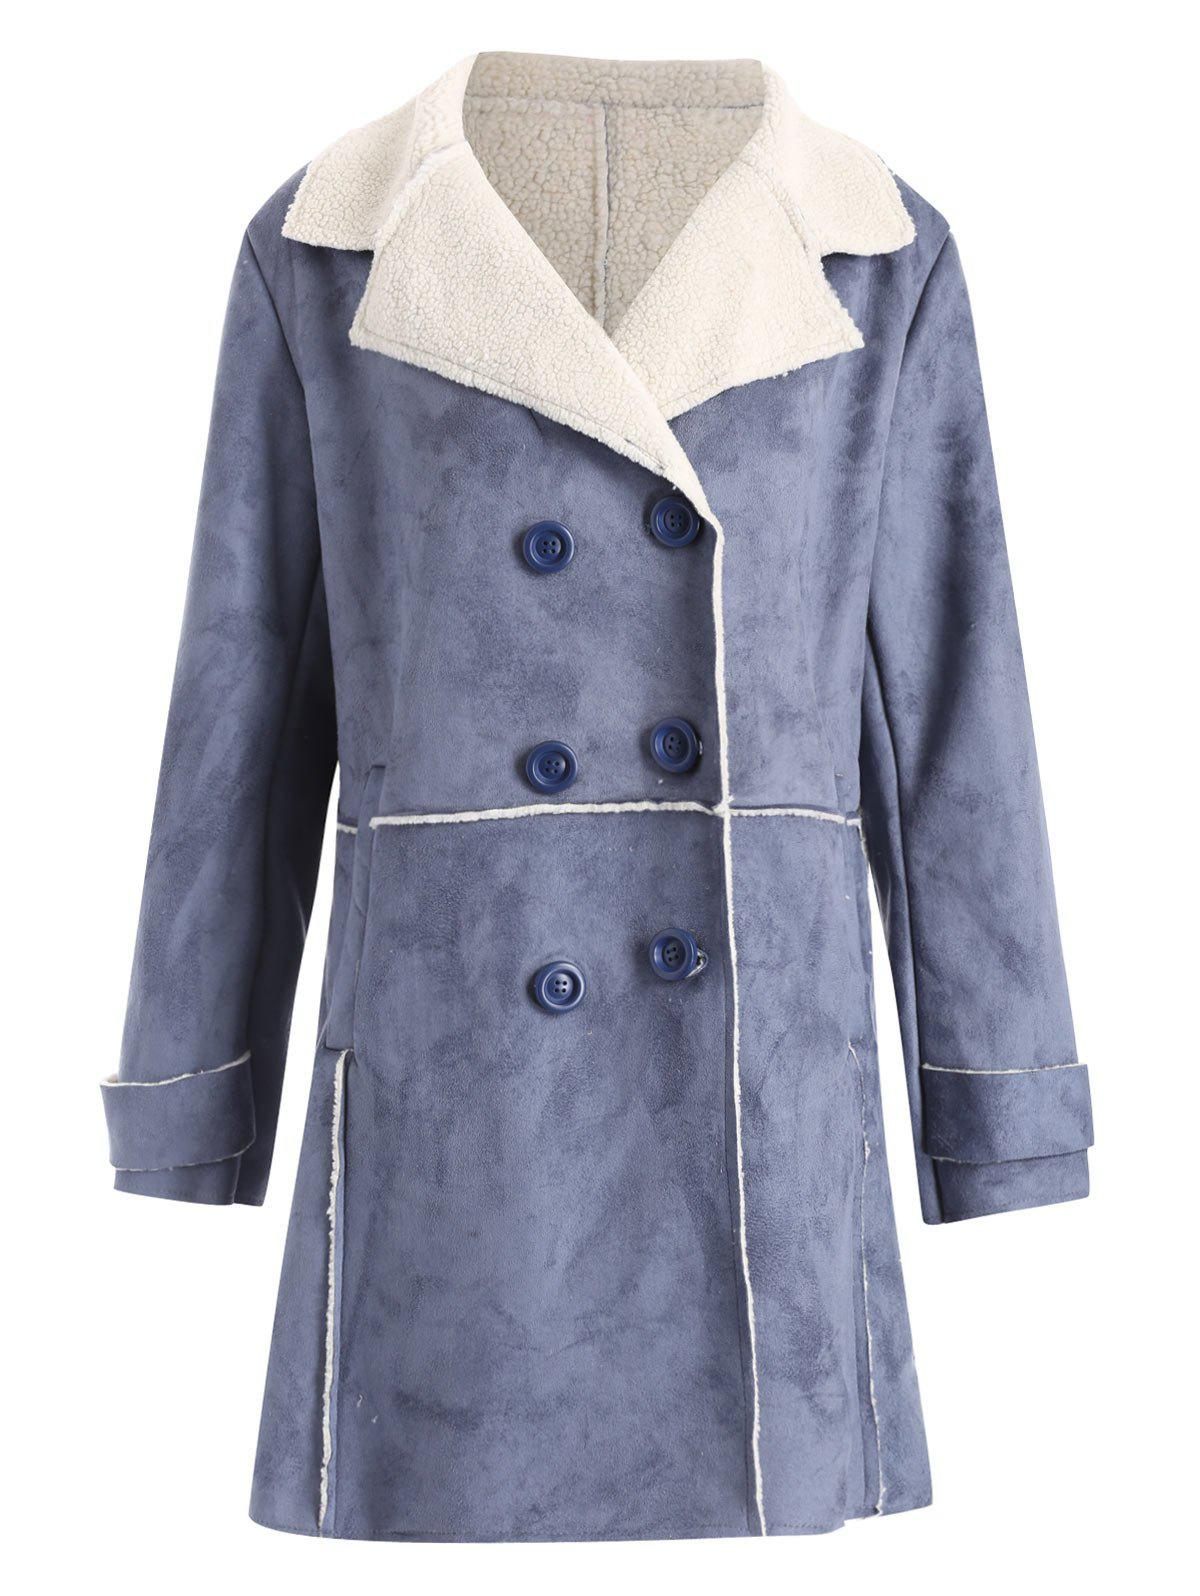 Plus Size Sherpa Lined Long Coat with PocketWOMEN<br><br>Size: 5XL; Color: BLUE; Clothes Type: Leather &amp; Suede; Material: Cotton Blends,Polyester; Type: Slim; Shirt Length: Long; Sleeve Length: Full; Collar: Turn-down Collar; Closure Type: Double Breasted; Pattern Type: Others; Embellishment: Front Pocket; Style: Casual; Season: Winter; Weight: 0.9700kg; Package Contents: 1 x Coat;